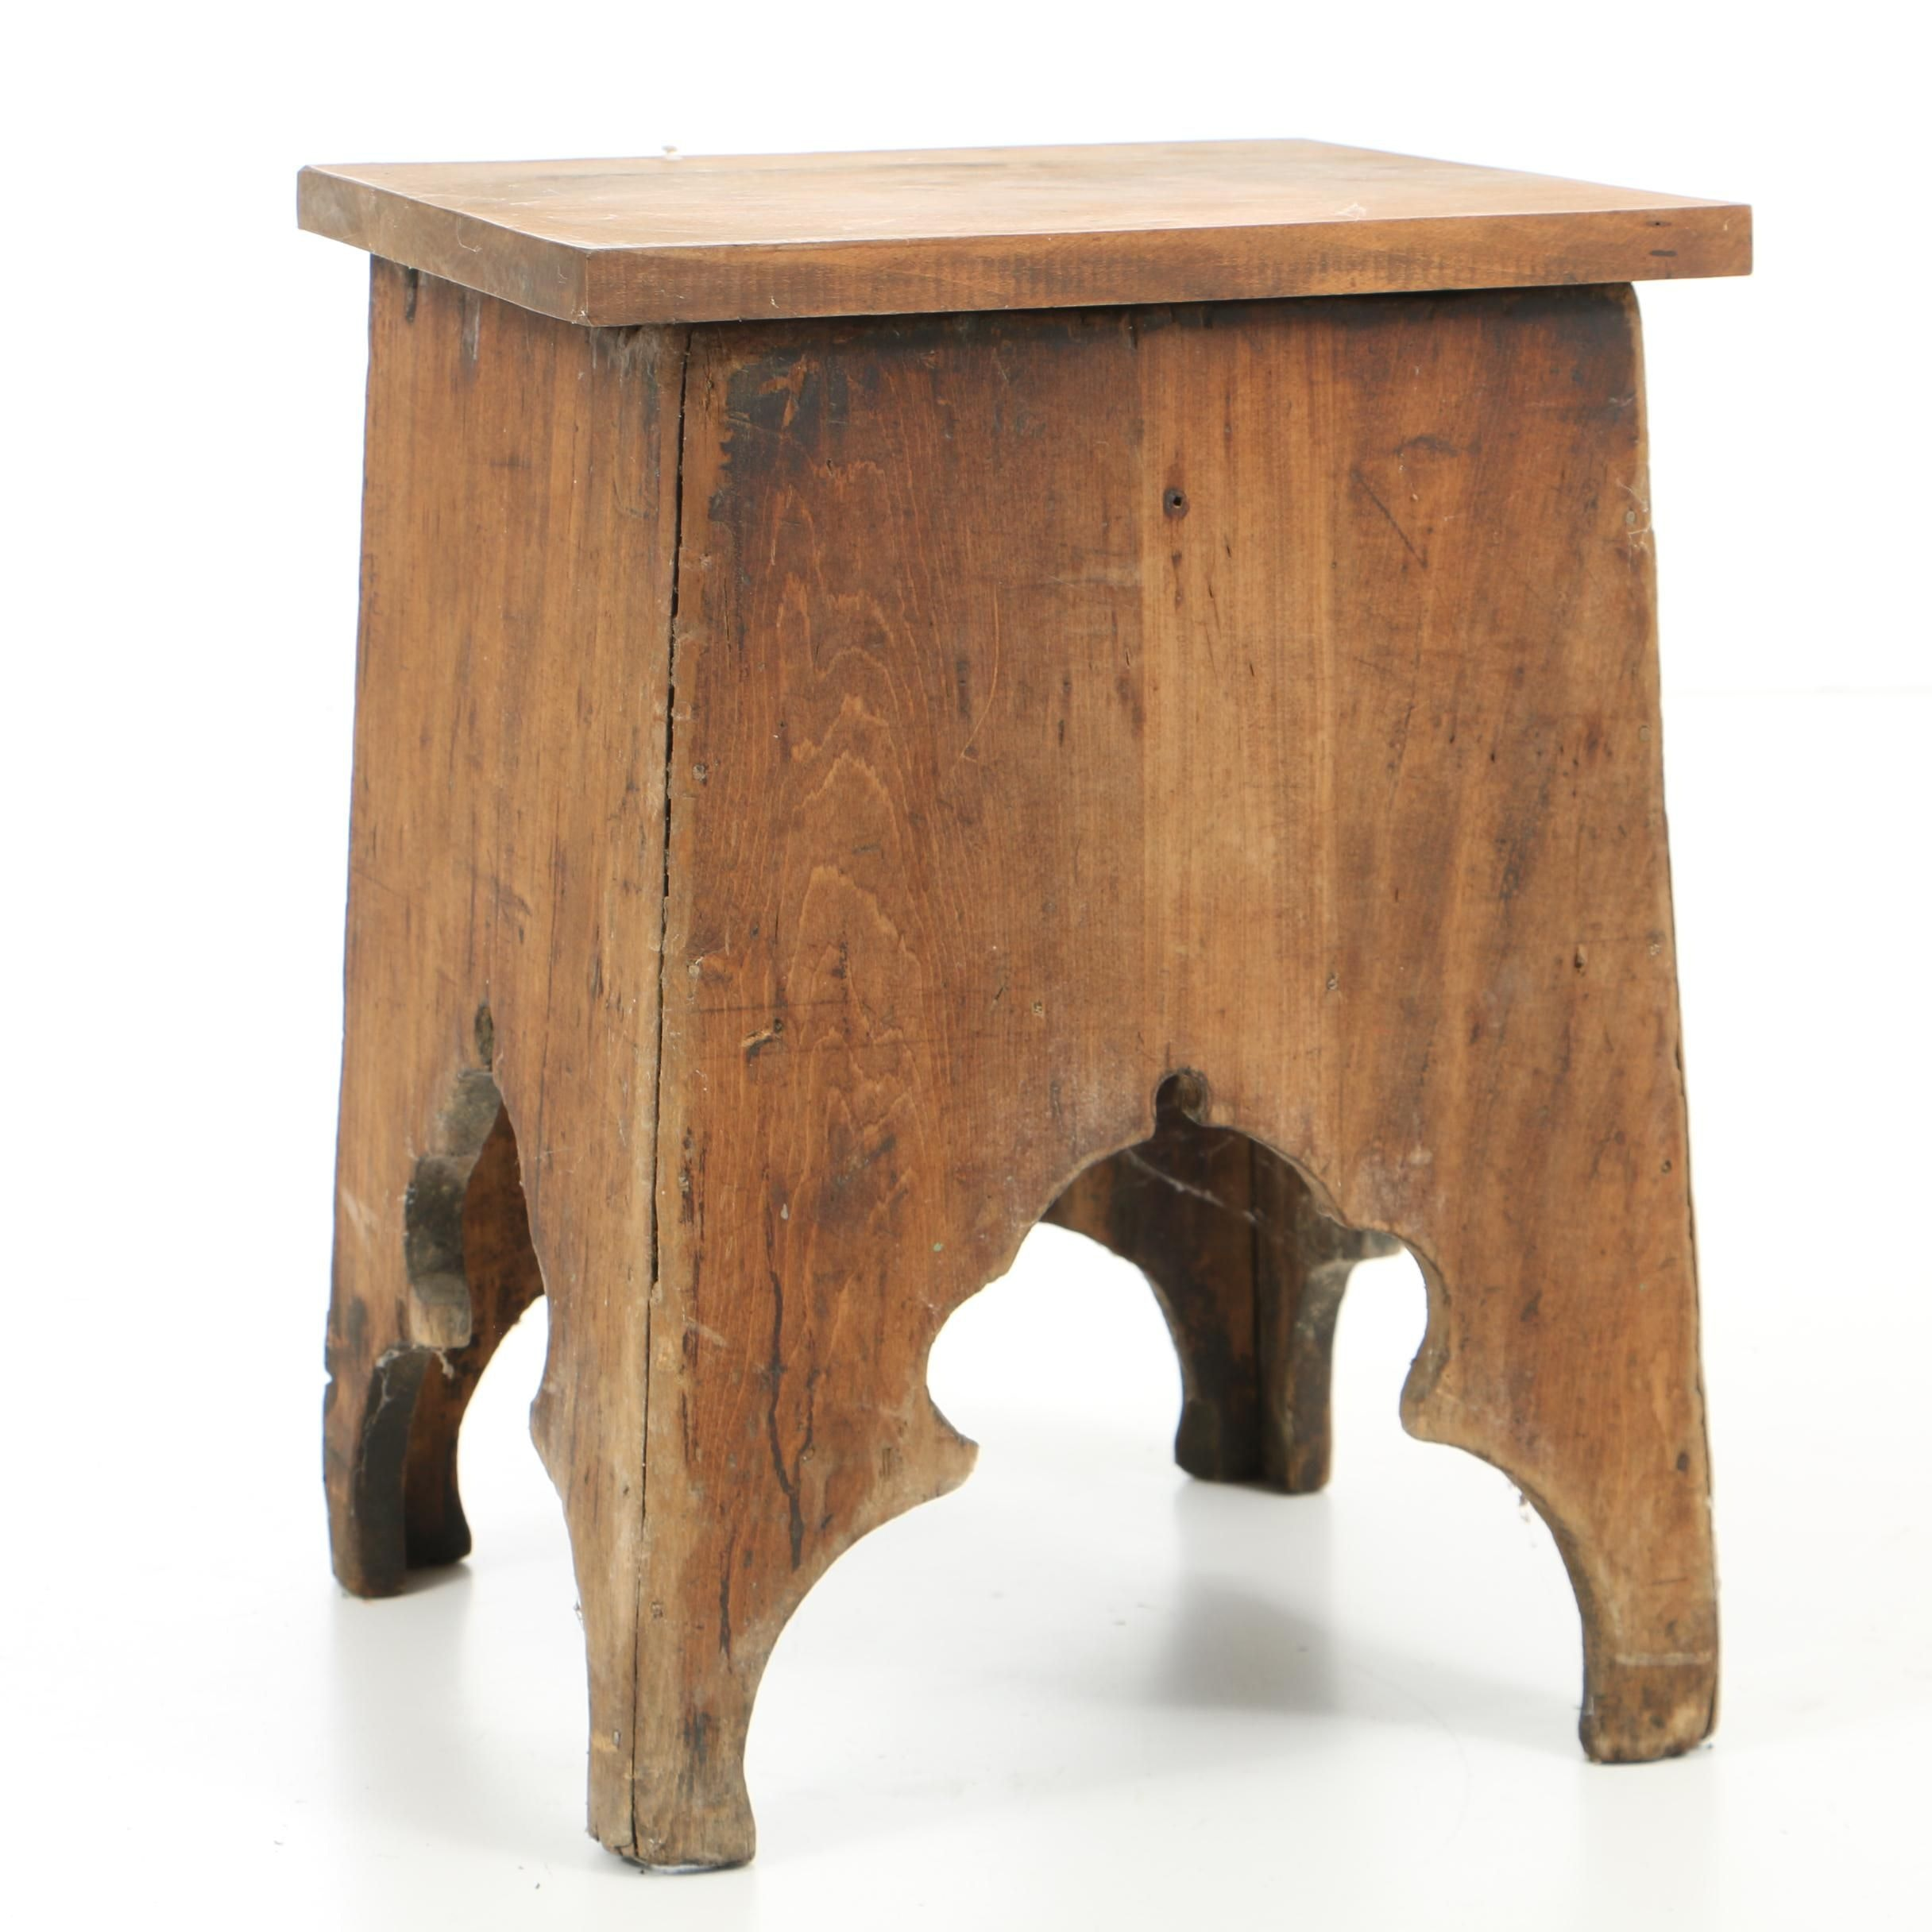 Antique Pine Lift-Top Stool